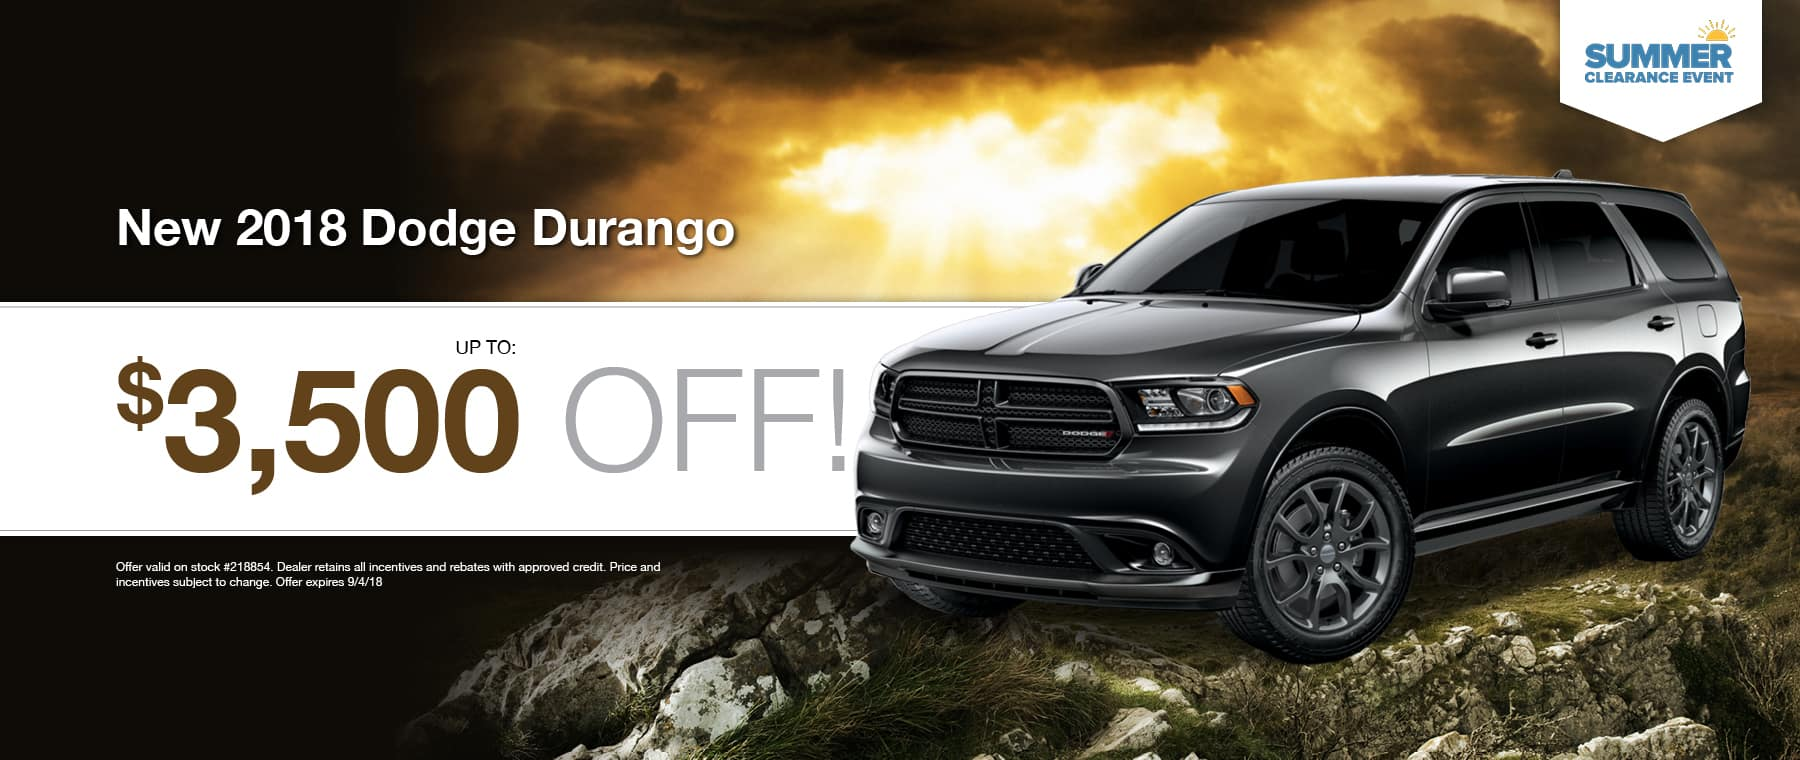 2018 Dodge Durango Special at Thomson Dodge in Thomson, GA